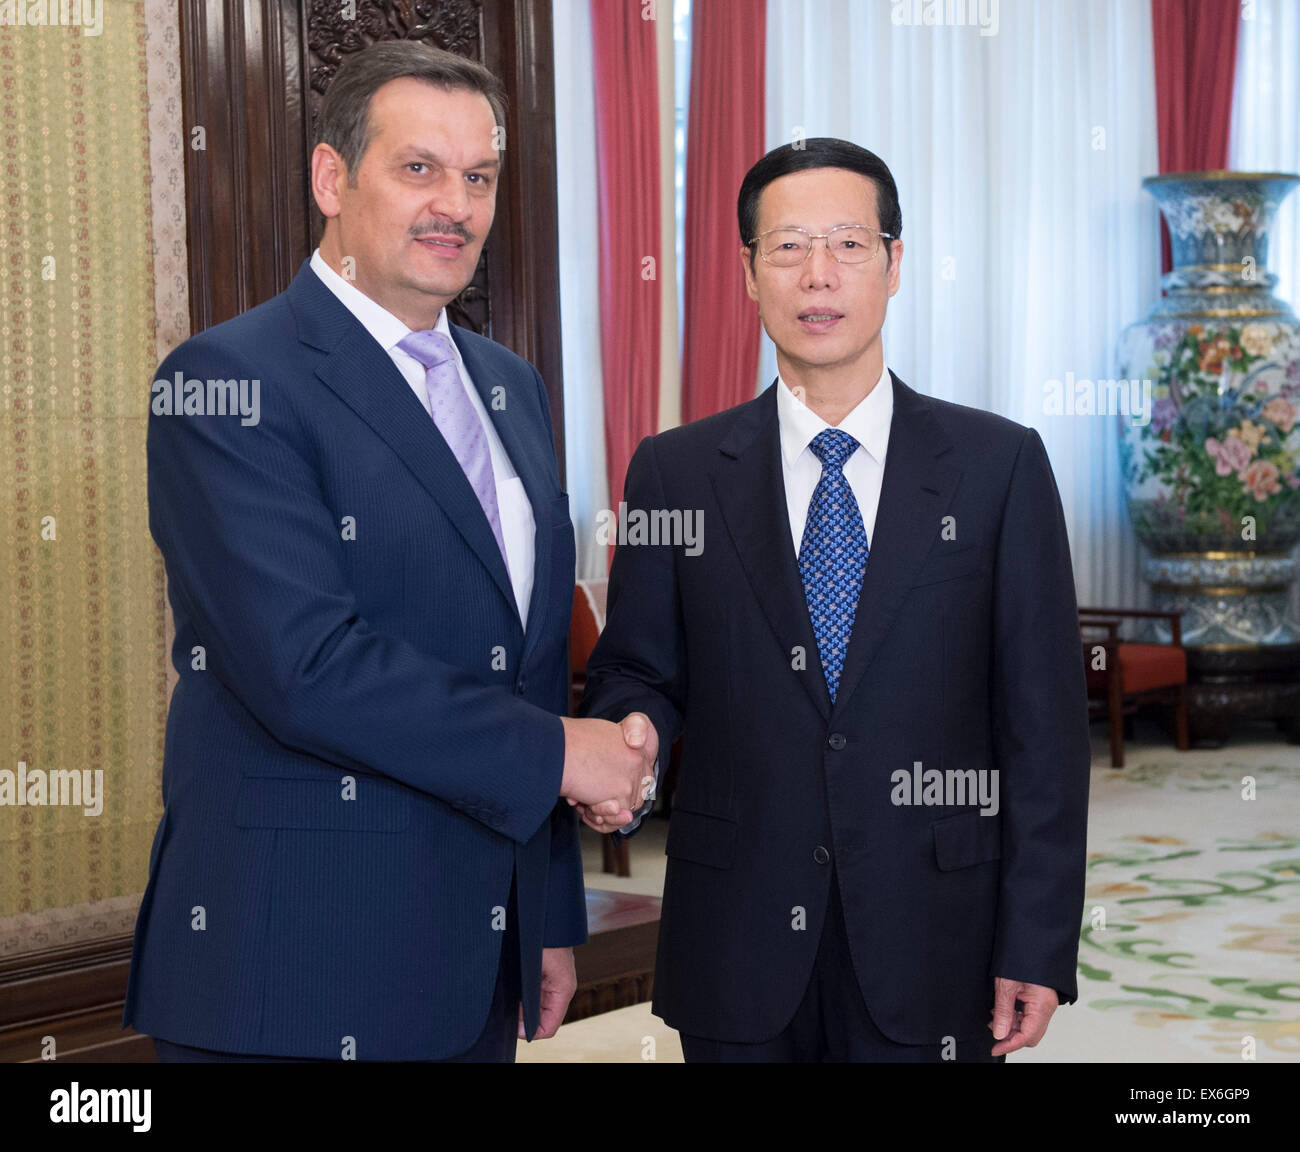 Beijing, China. 8th July, 2015. Chinese Vice Premier Zhang Gaoli (R) meets with Anatoly Kalinin, deputy prime minister - Stock Image